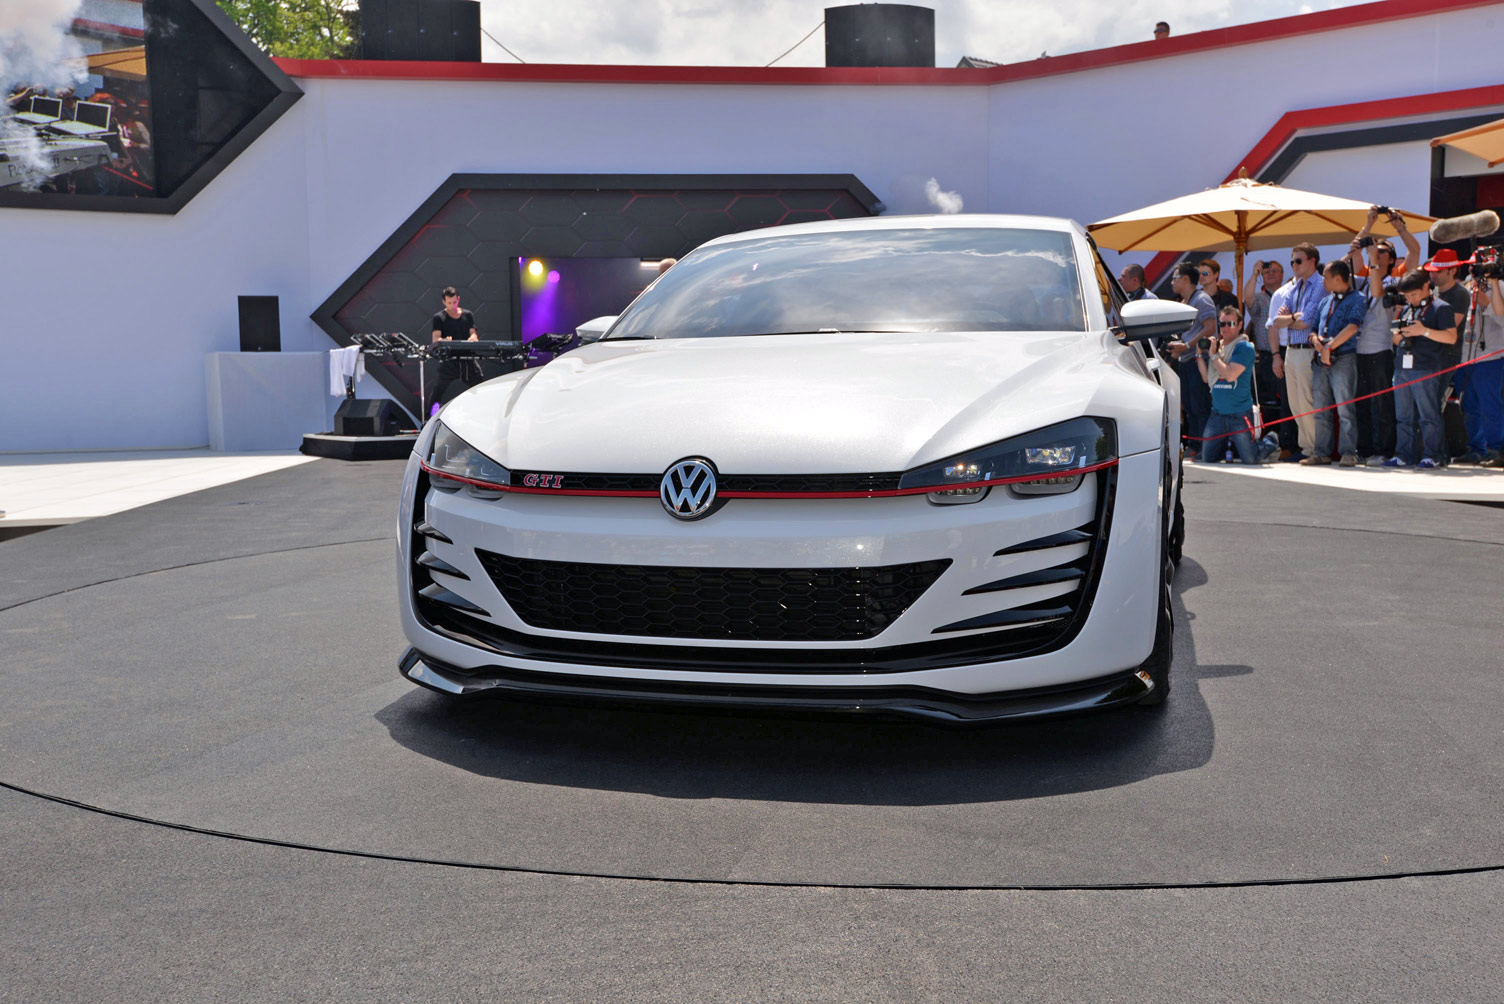 volkswagen-design-vision-gti-worthersee-017